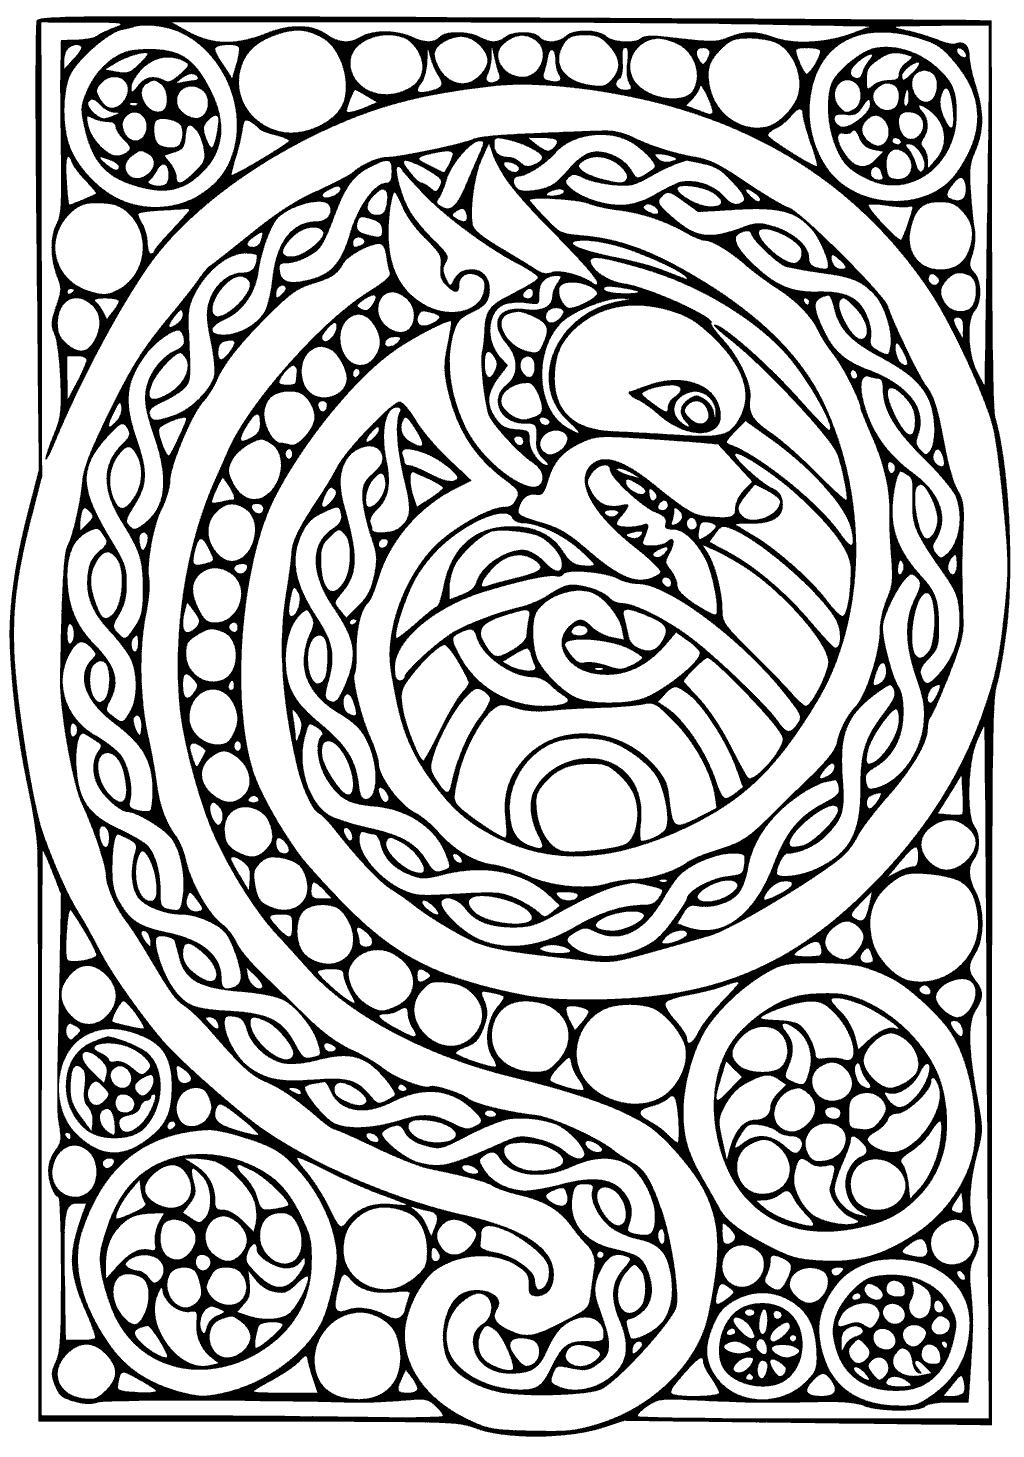 patterned coloring pages pattern animal coloring pages download and print for free patterned coloring pages 1 1